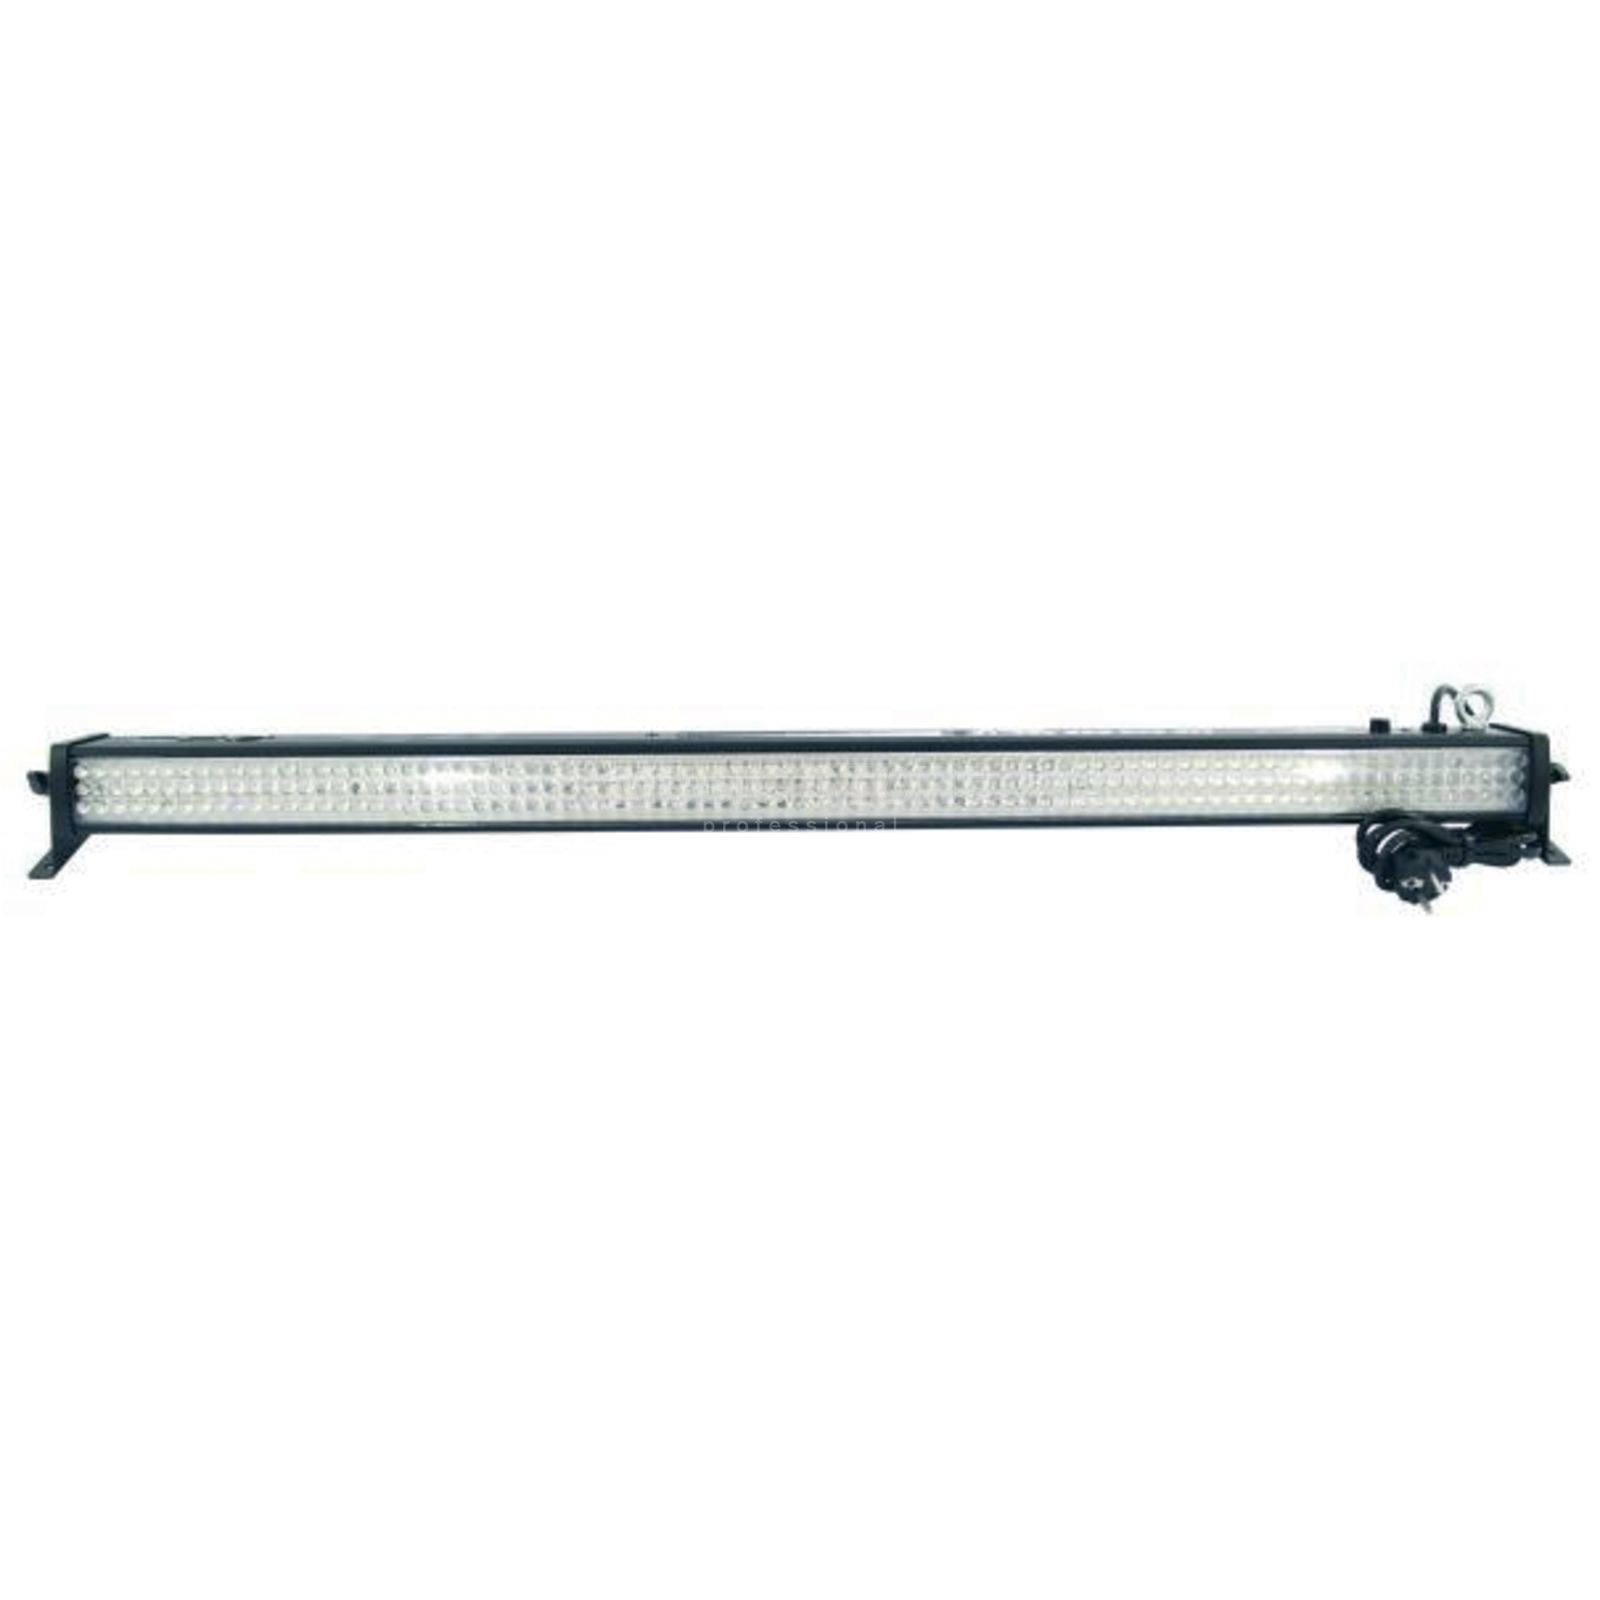 Eurolite LED Bar RGB 252/10 indoor 20°  Produktbild